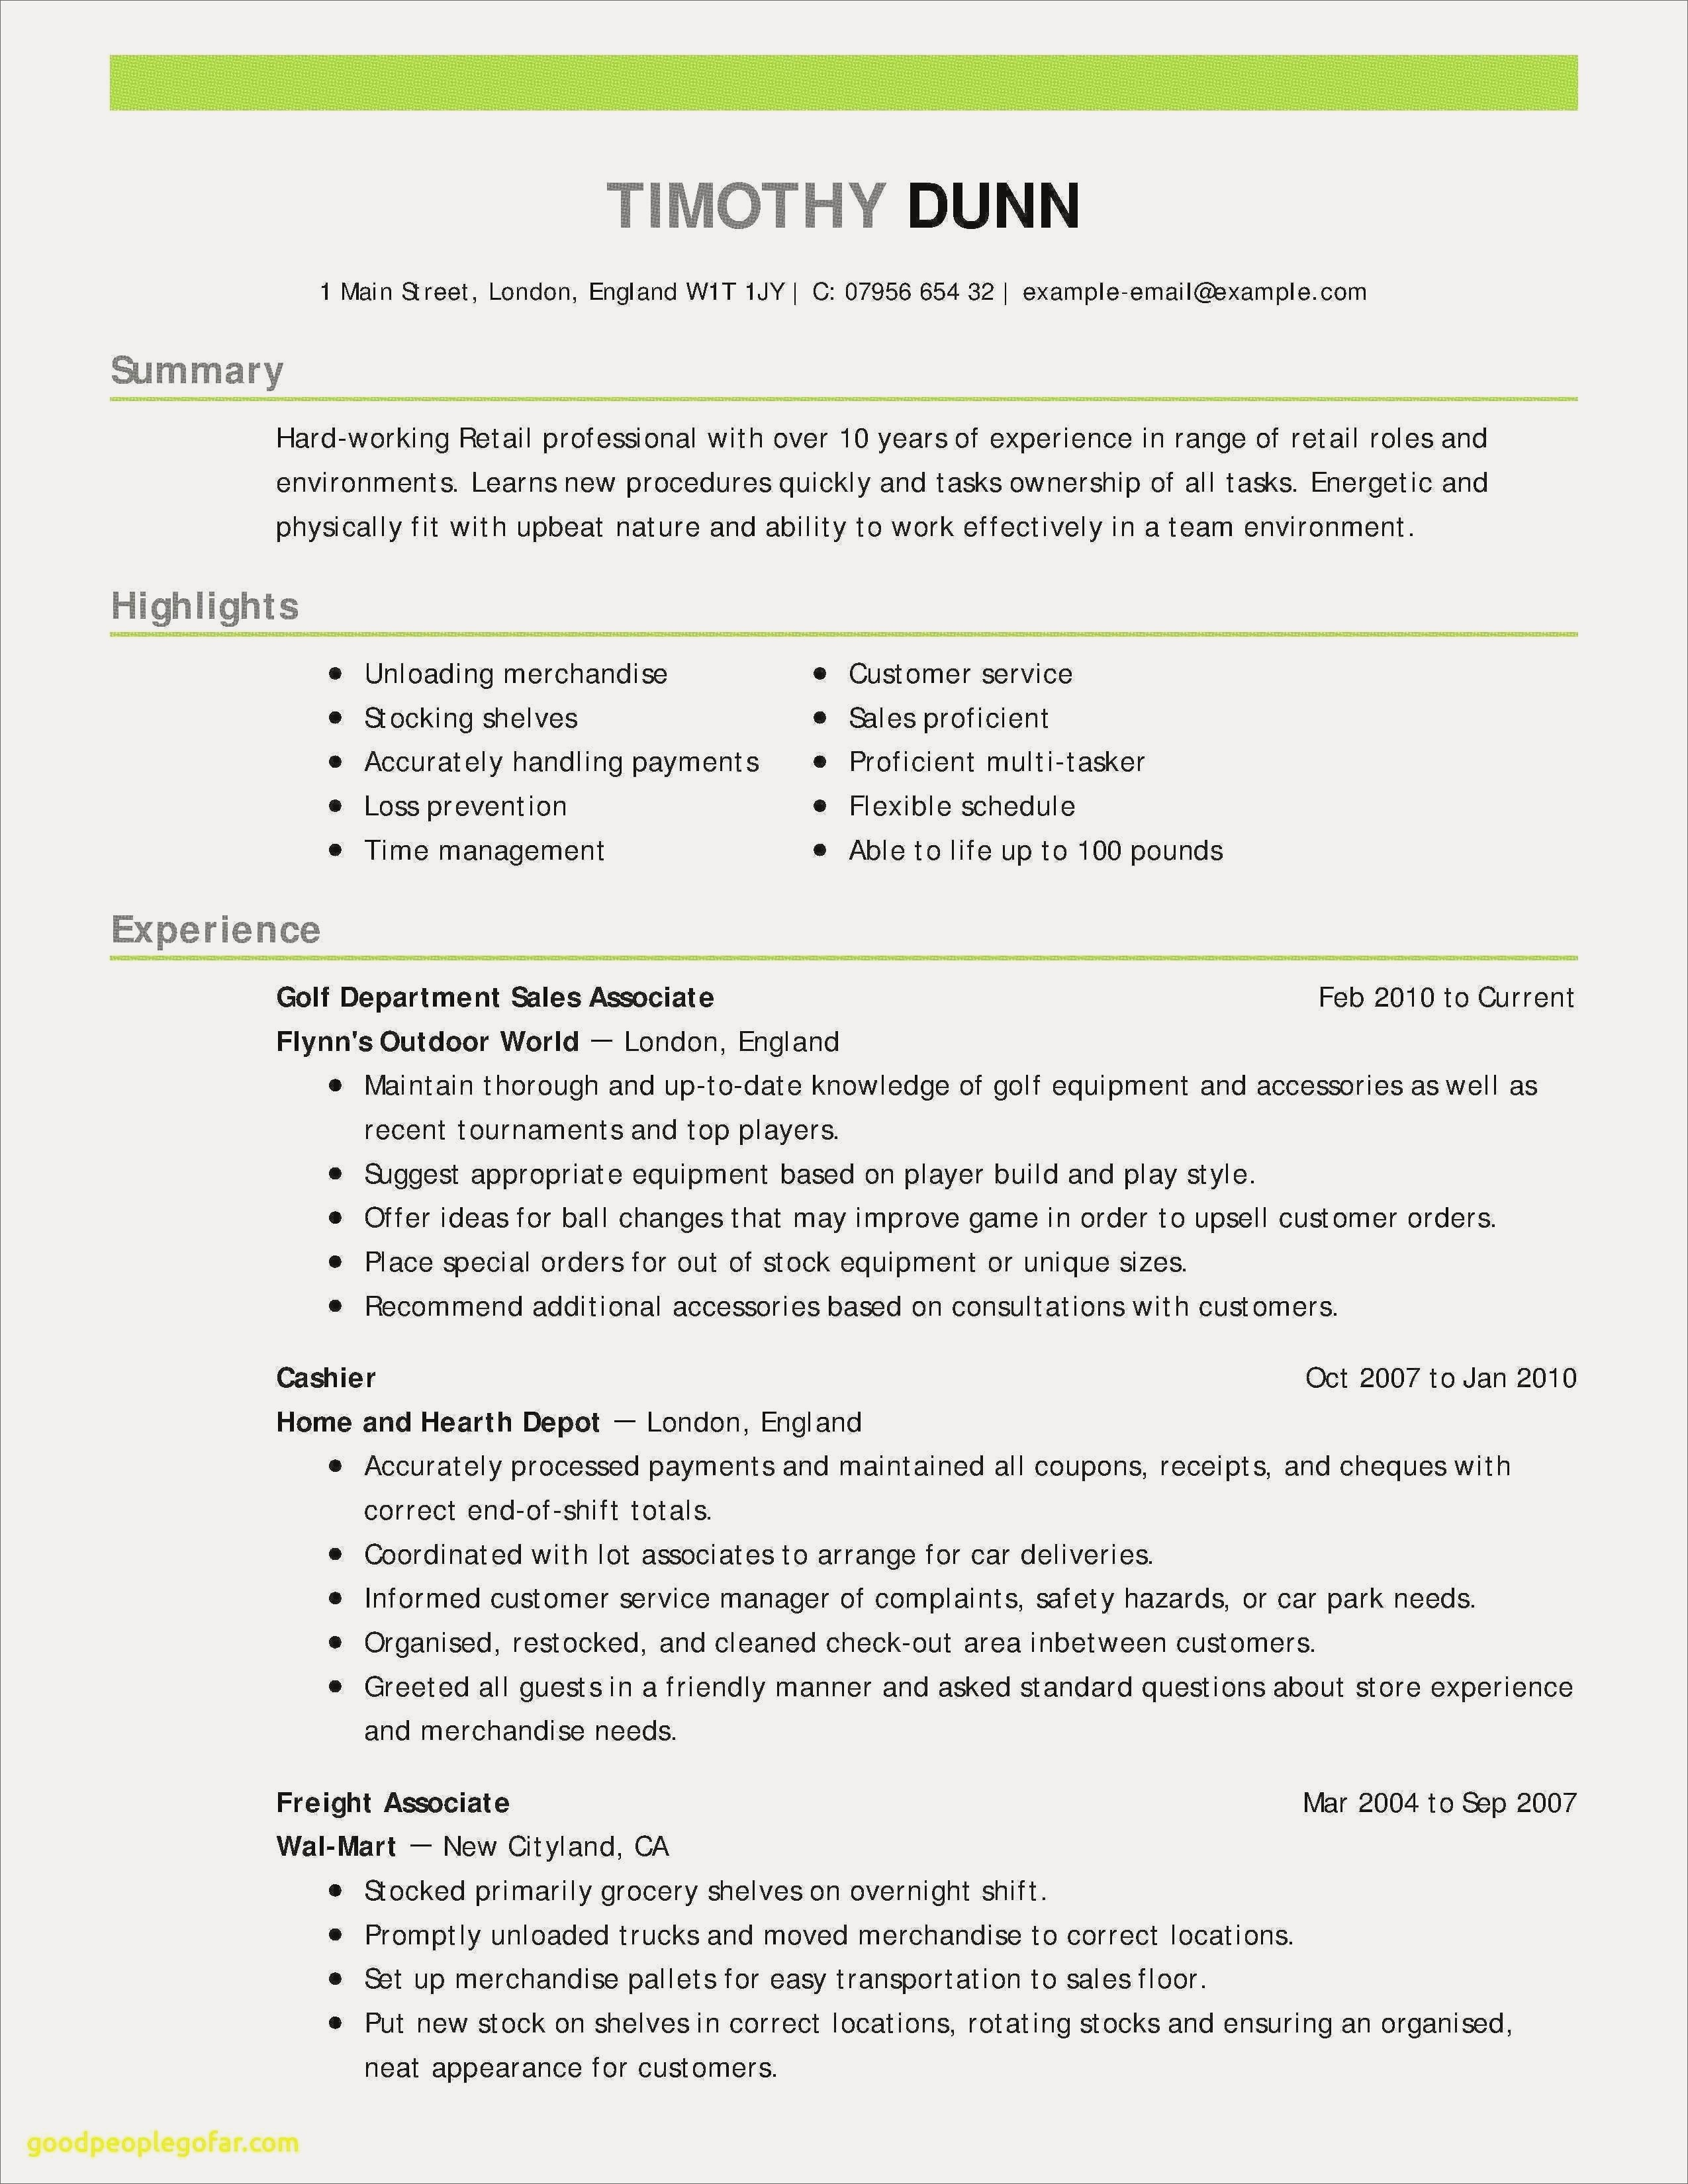 What to Put for Skills On Resume - Resume Examples Skills and Abilities Best Customer Service Resume